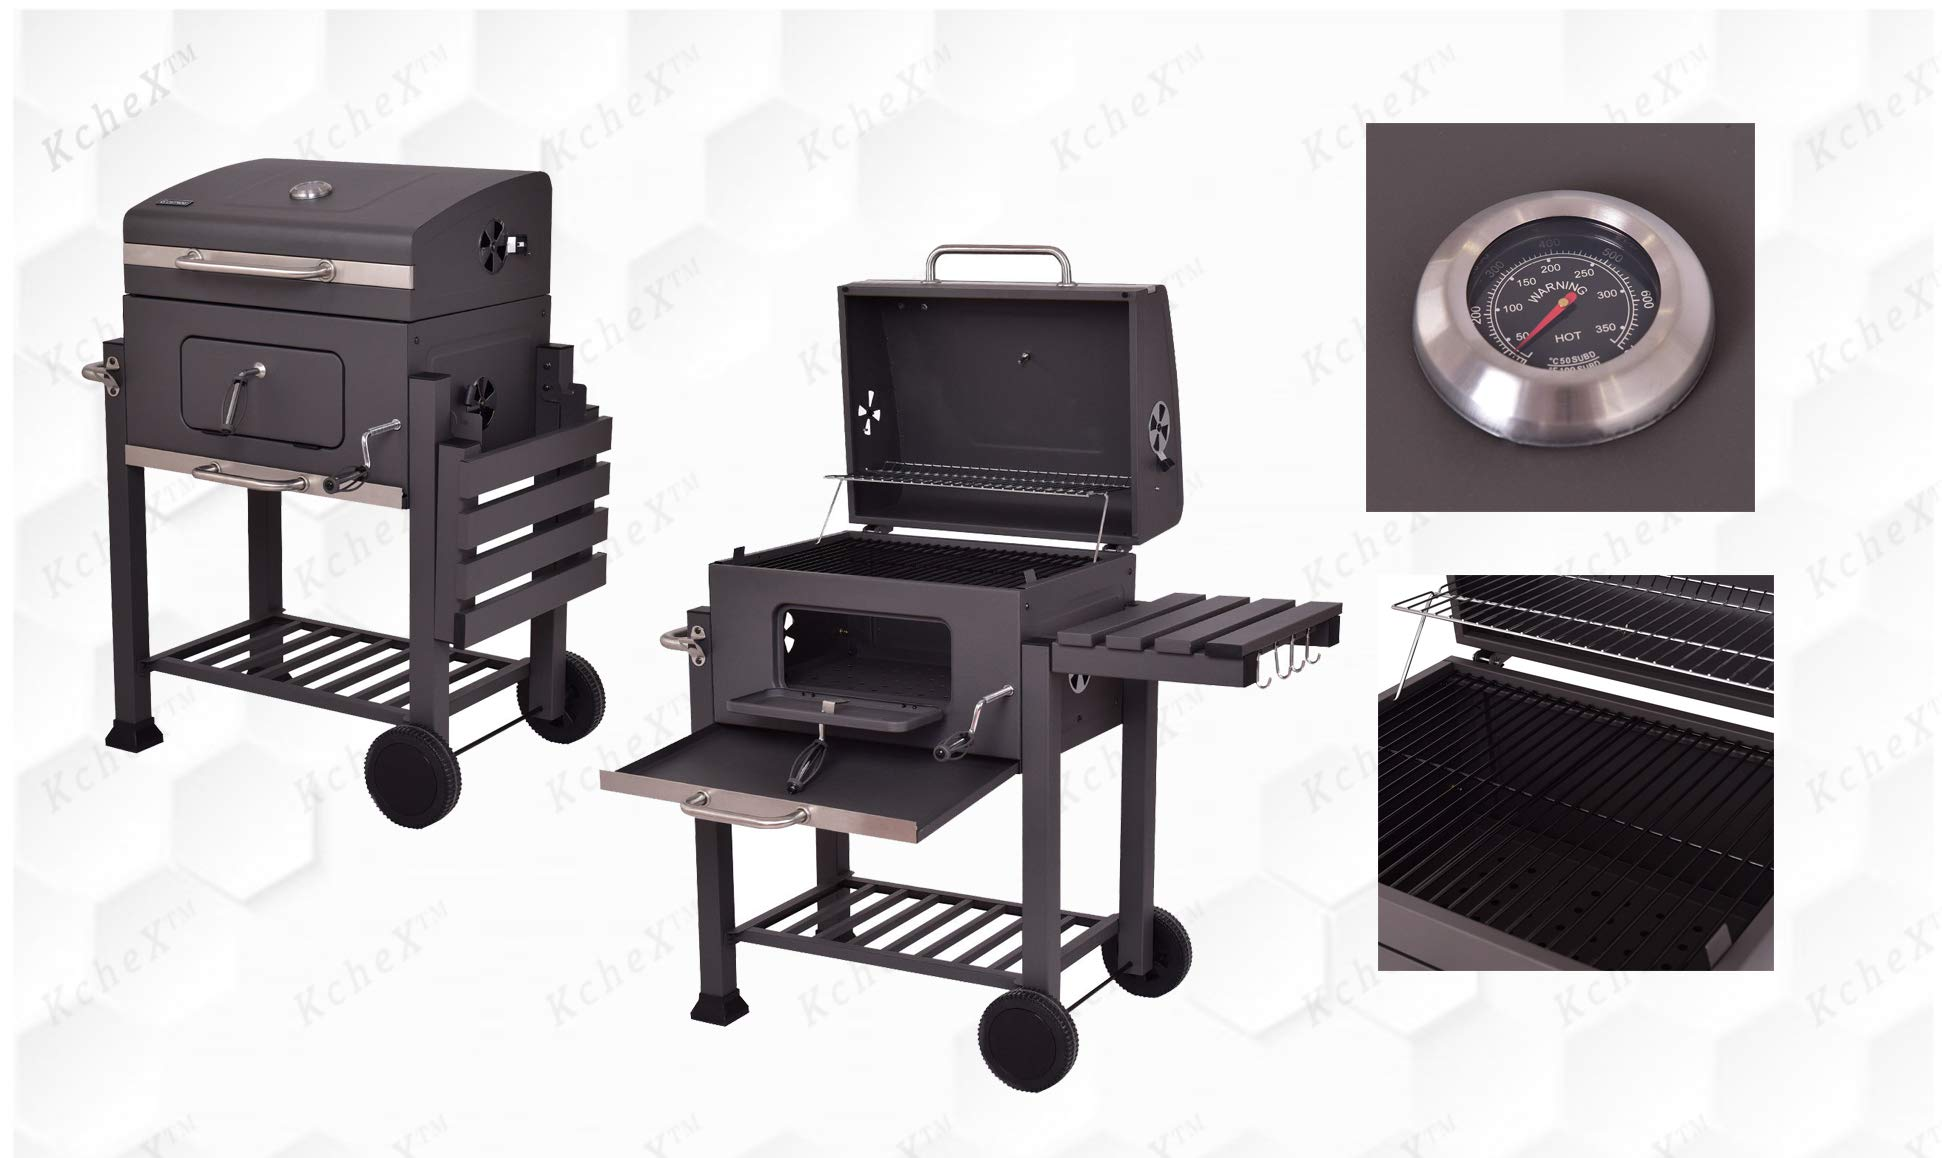 KCHEX__Charcoal Grill Barbecue